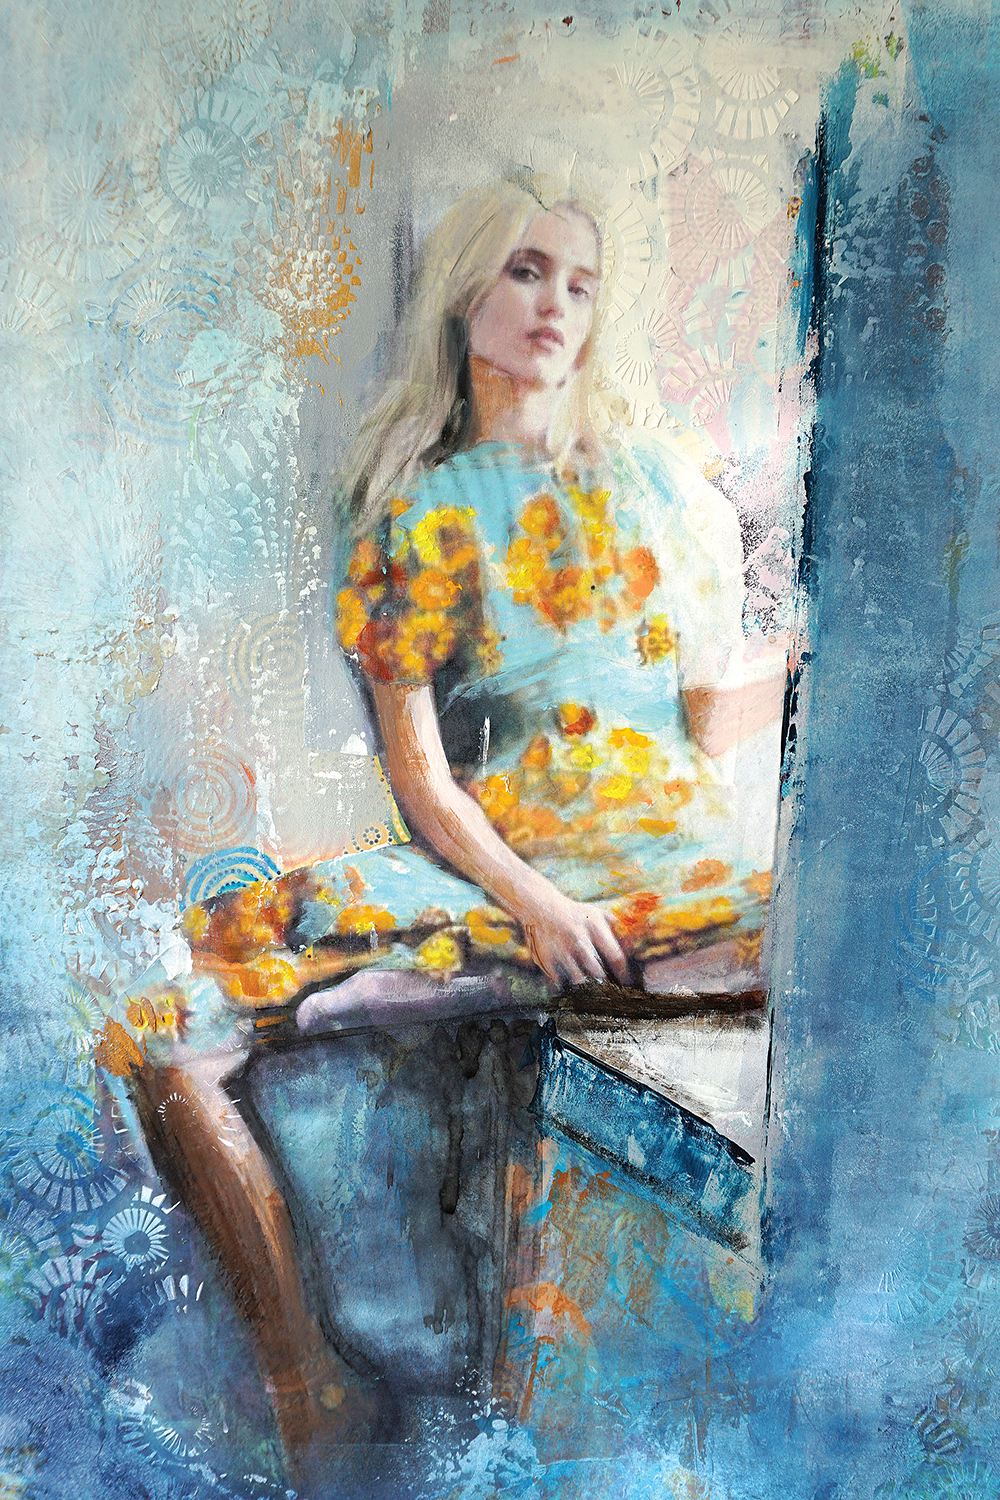 blonde woman sitting in window wearing dress with yellow flowers